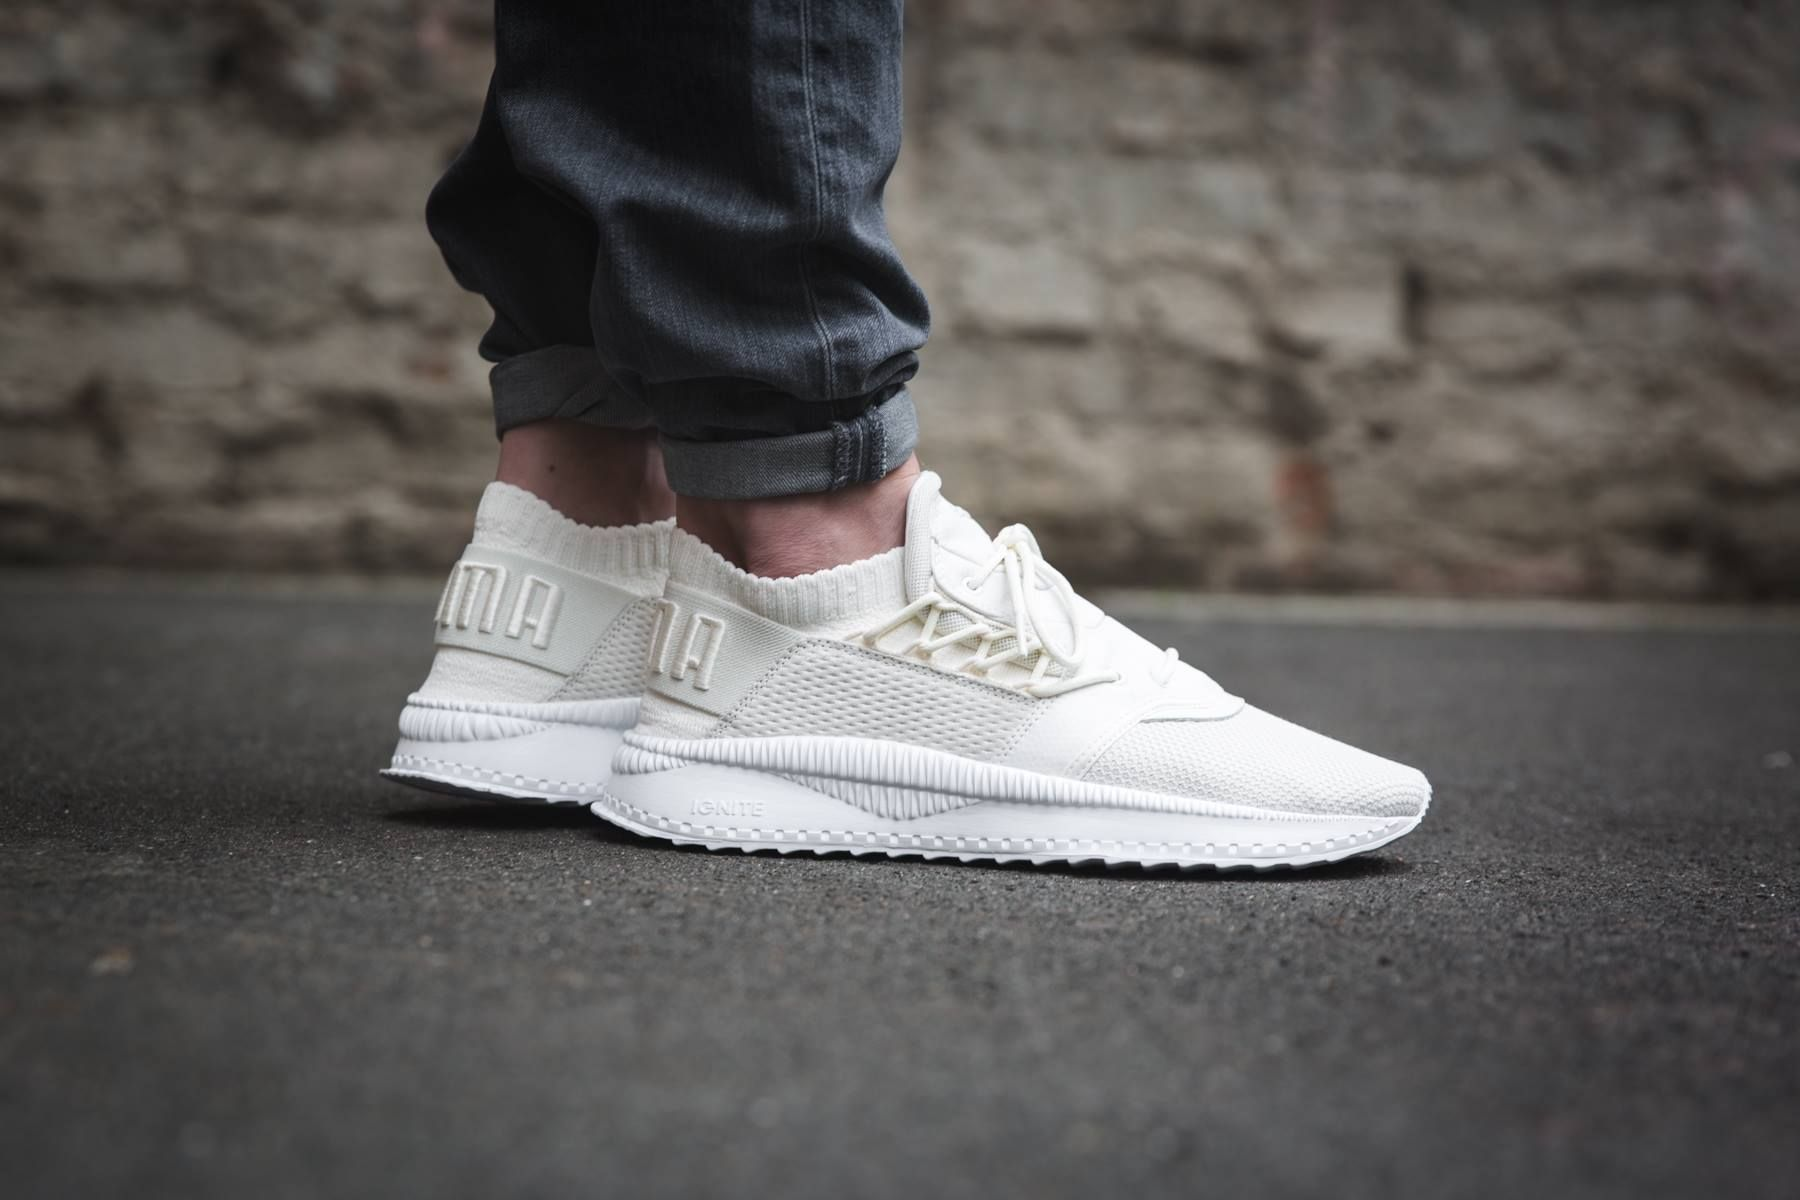 0e147123af Puma Tsugi Shinsei Raw 'cream white / white' (363758-03) - KICKS-DAILY.COM